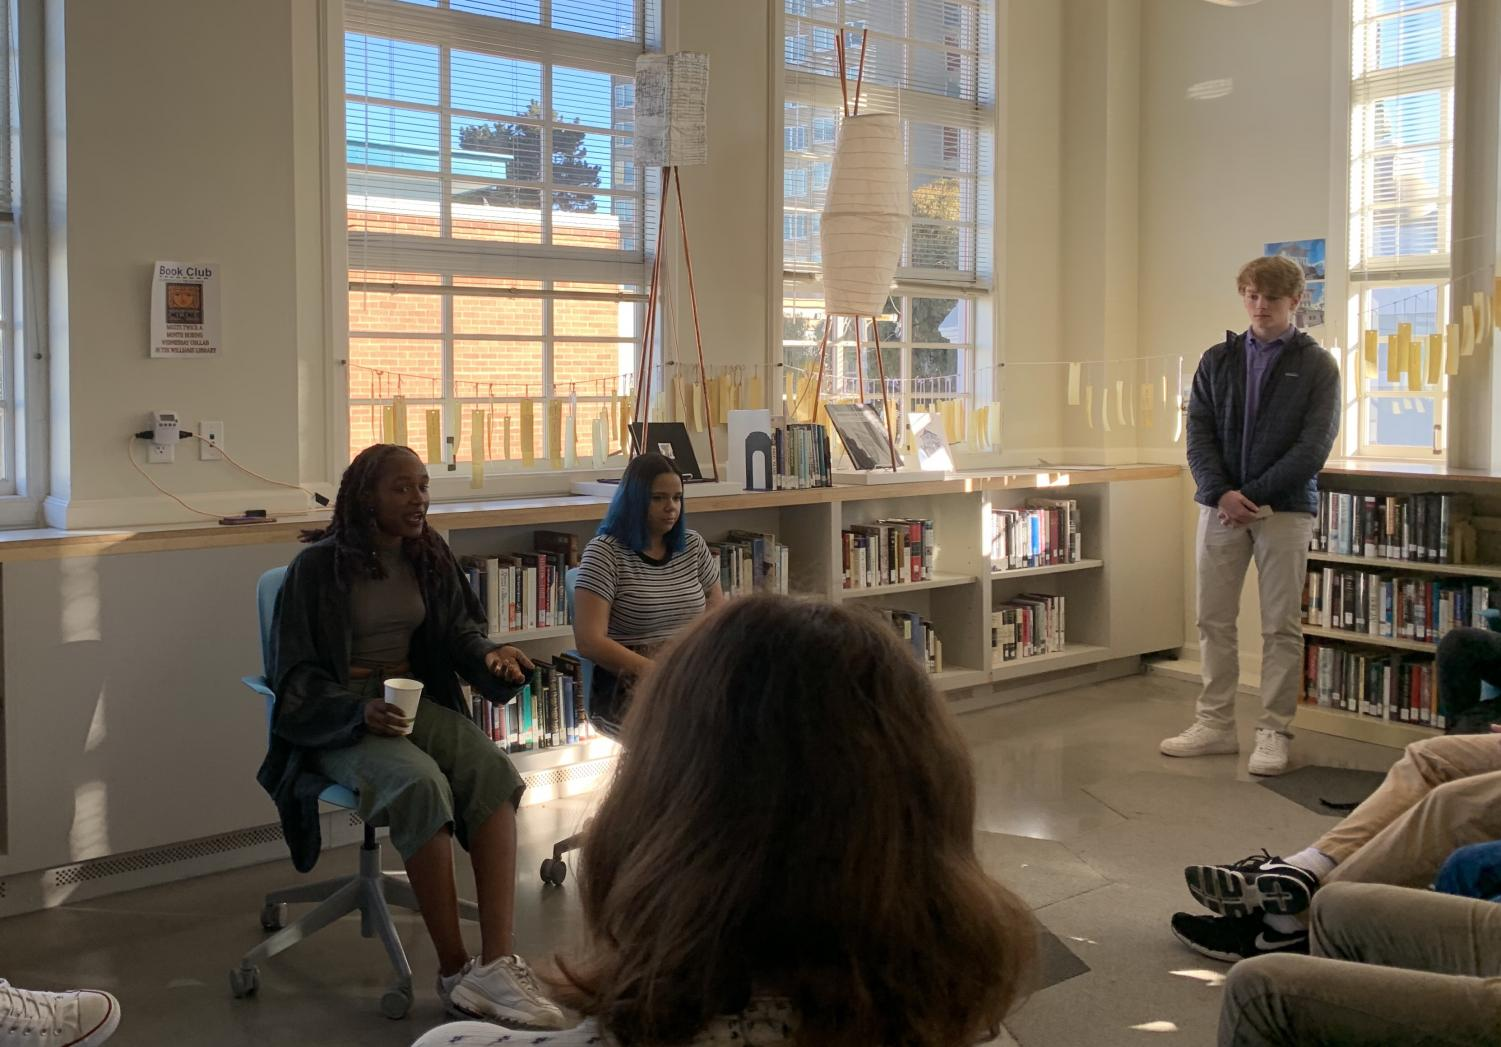 Guest speakers Bria Smith and Samantha Fuentes speak to a group of students in the Carroll Learning Commons. The event was organized by junior Cole Matthes.